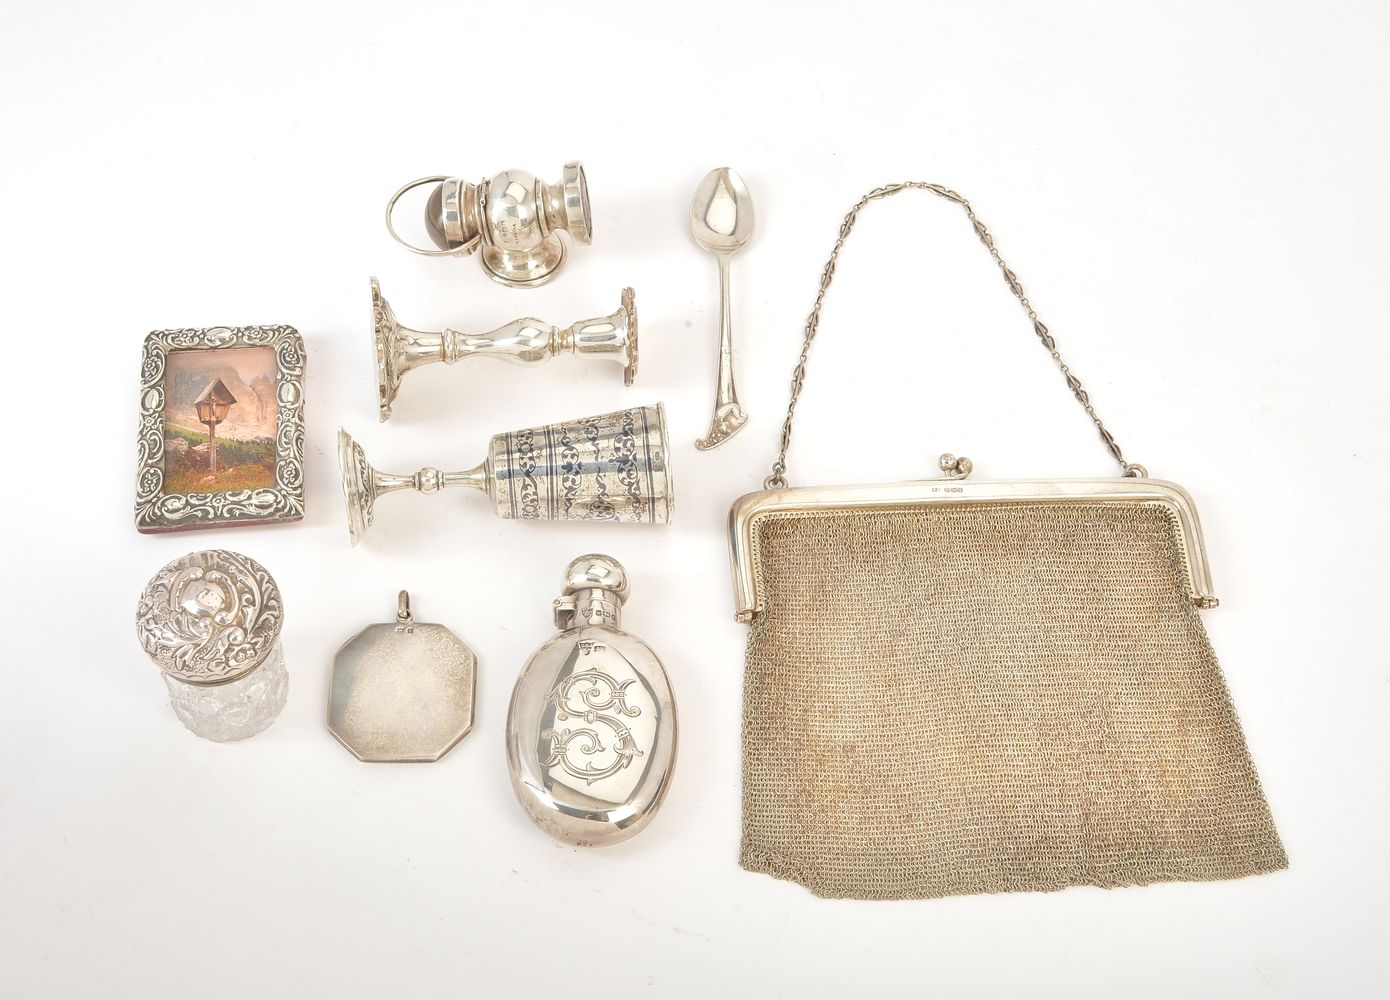 Lot 699 - A collection of small silver